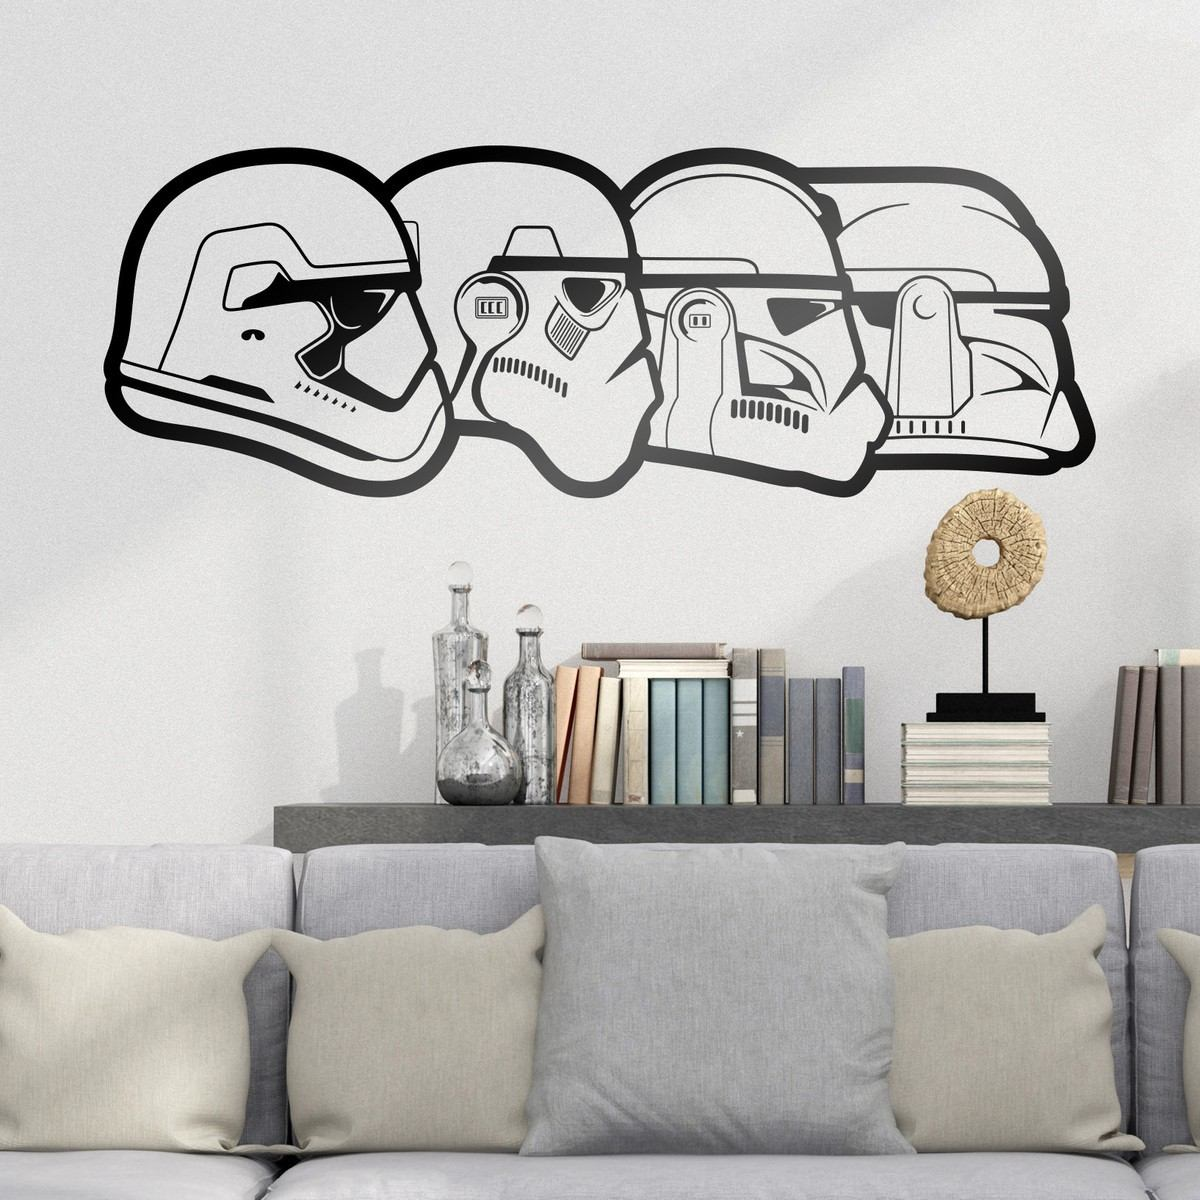 Vinilos Decorativos Star Wars Bondai Vinilos Decorativos Star Wars Evolucion Stormtroopers